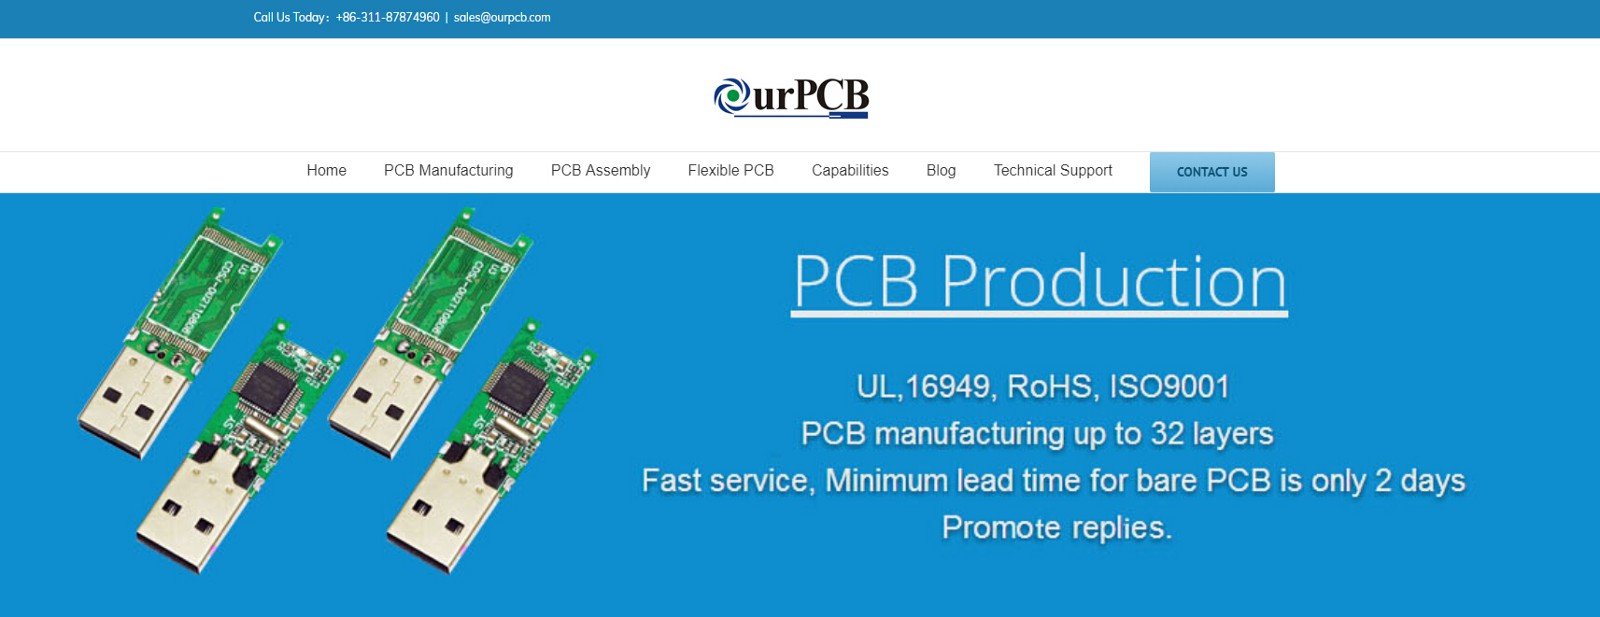 10 Pcb Service Company From China Louisdong Medium Manufacturer Low Volume Prototyping Custom Circuit Boards Ourpcb Is A Multi National Manufacturing And Assembly That Provides Global Support While Utilizing Its Own Chinese